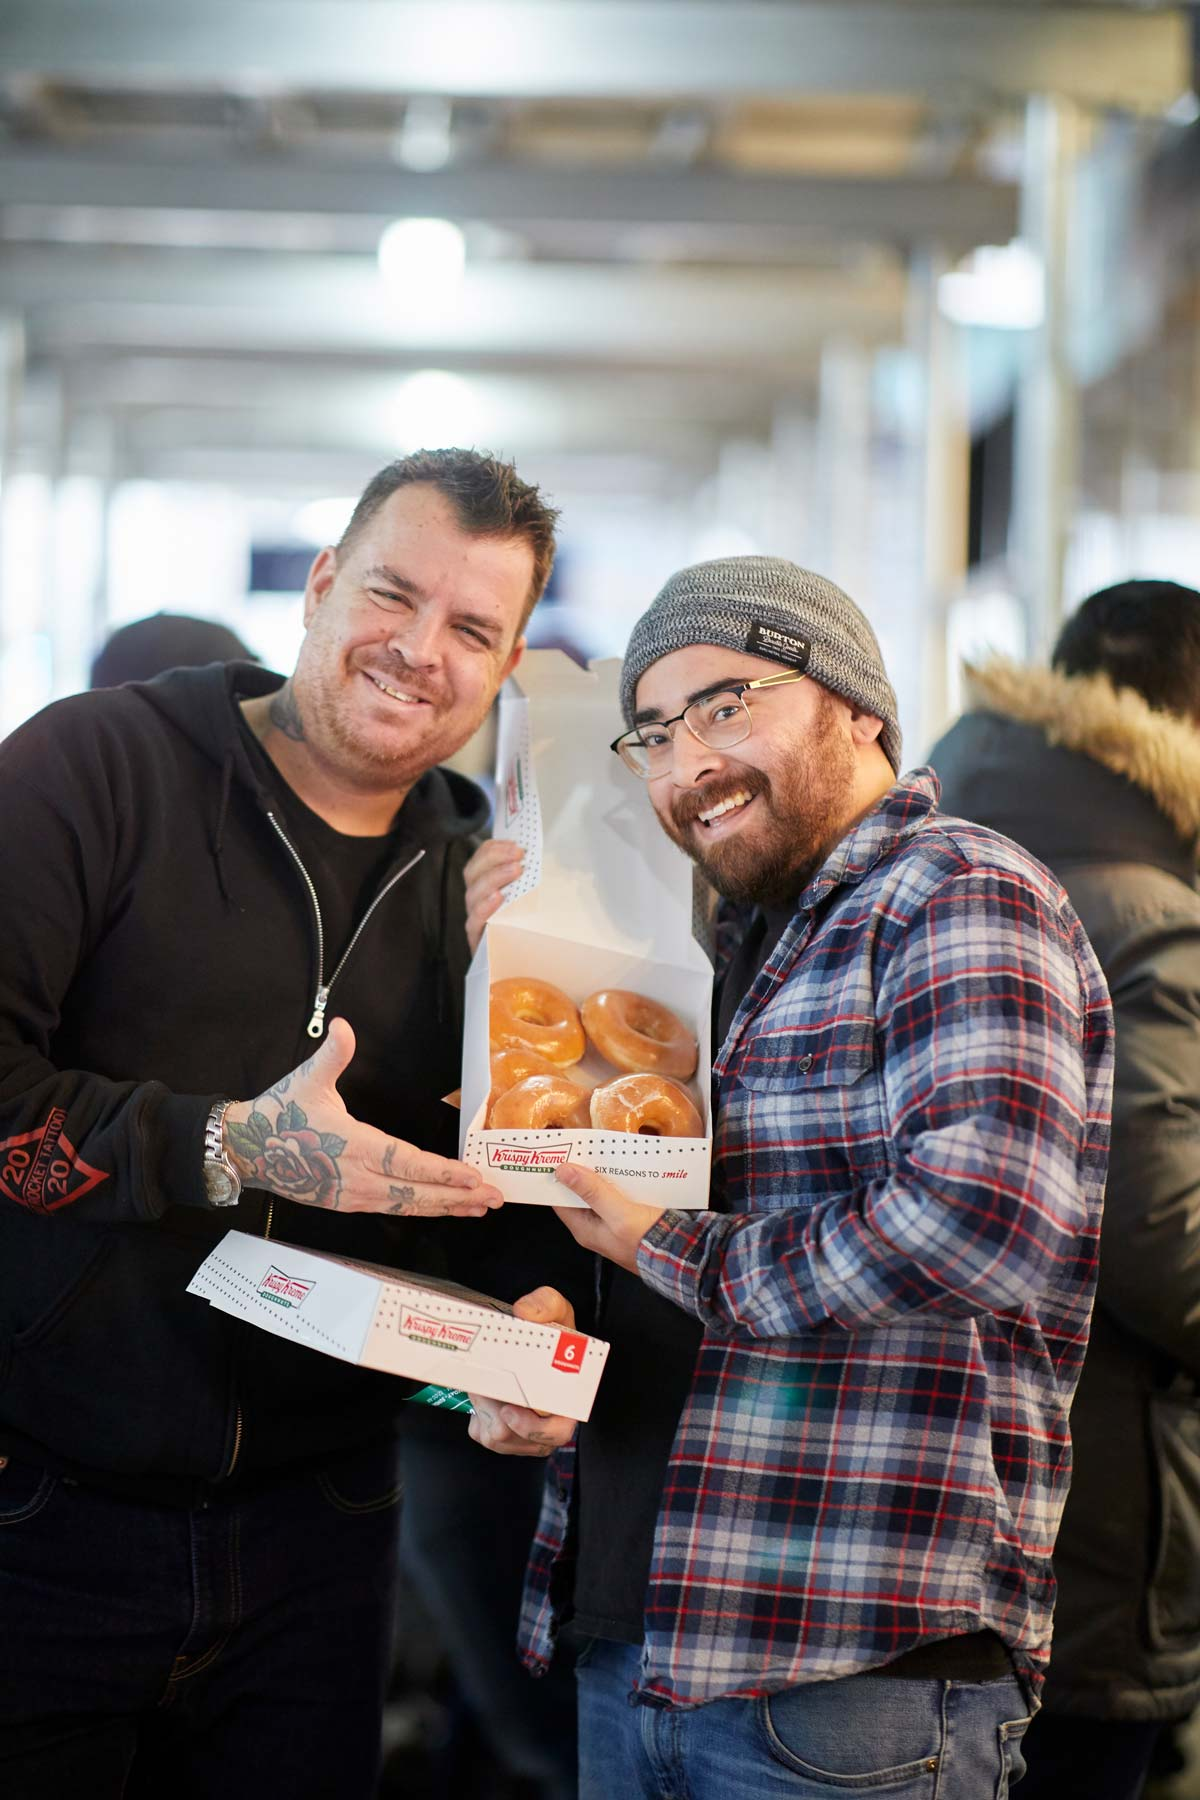 Commercial lifestyle photography of two male friends enjoying a box of Krispy Kreme doughnuts